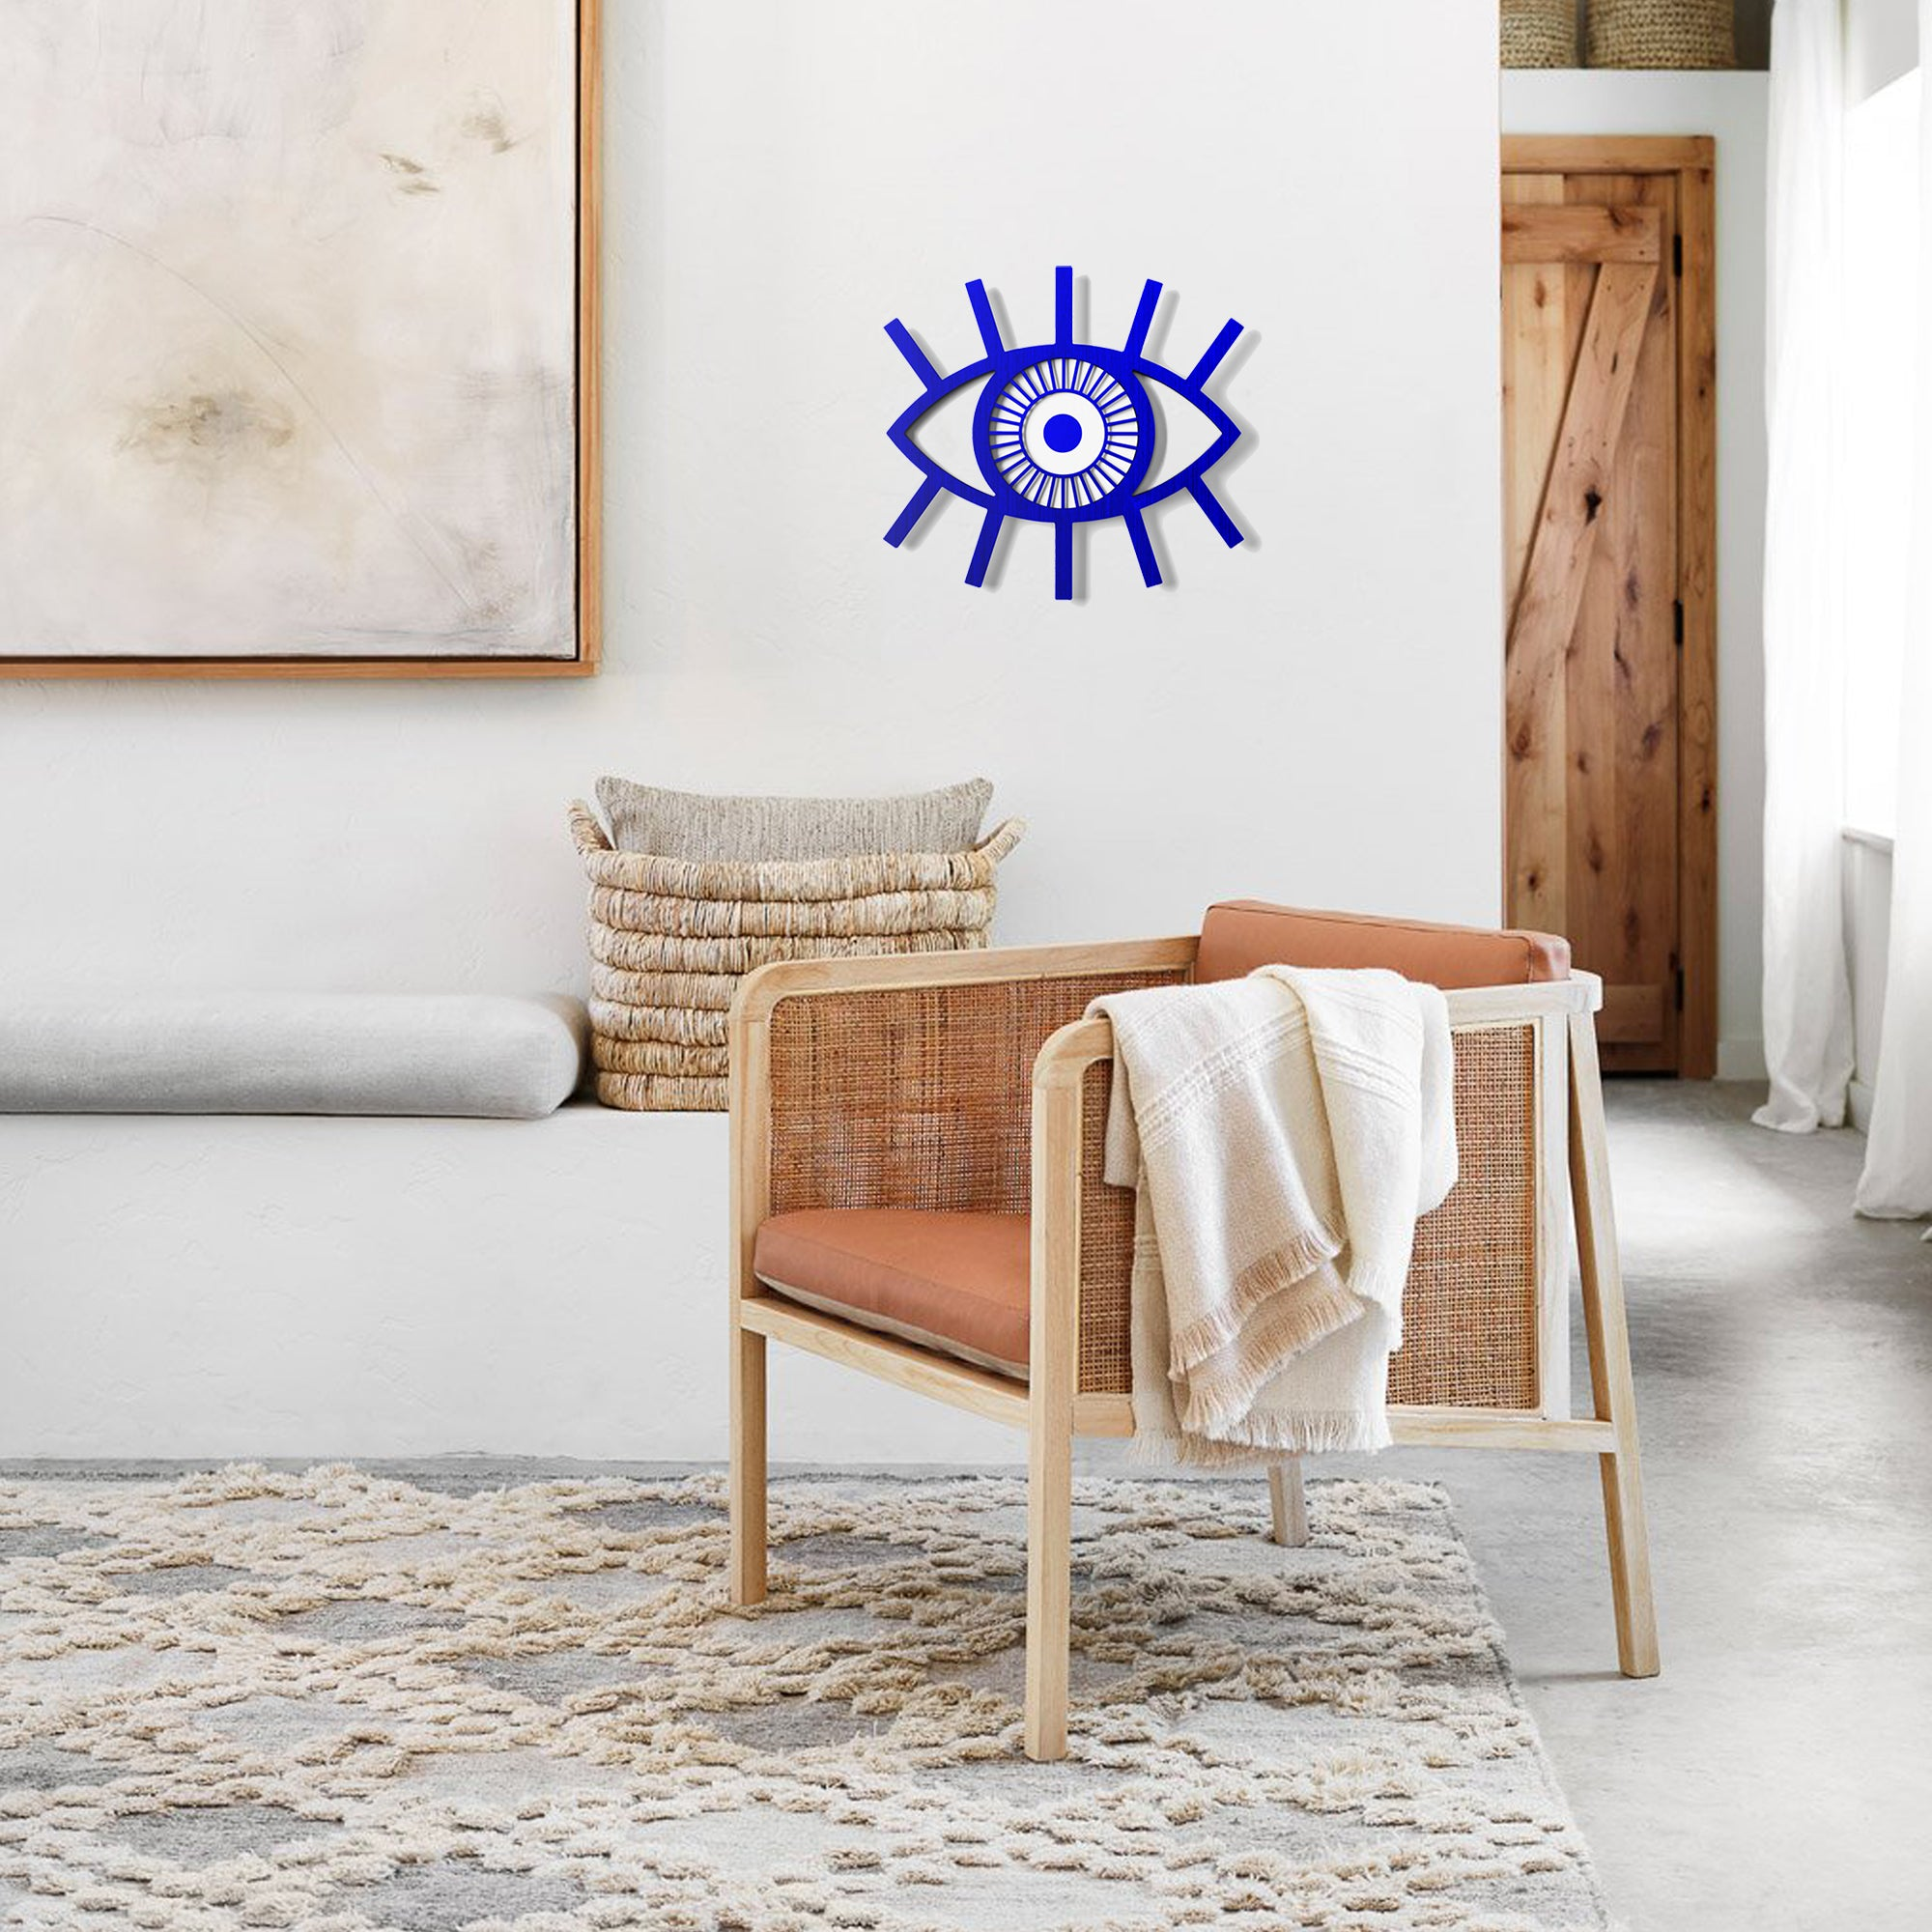 Evil Eye Wall Decor and Evil Eye Home Decor